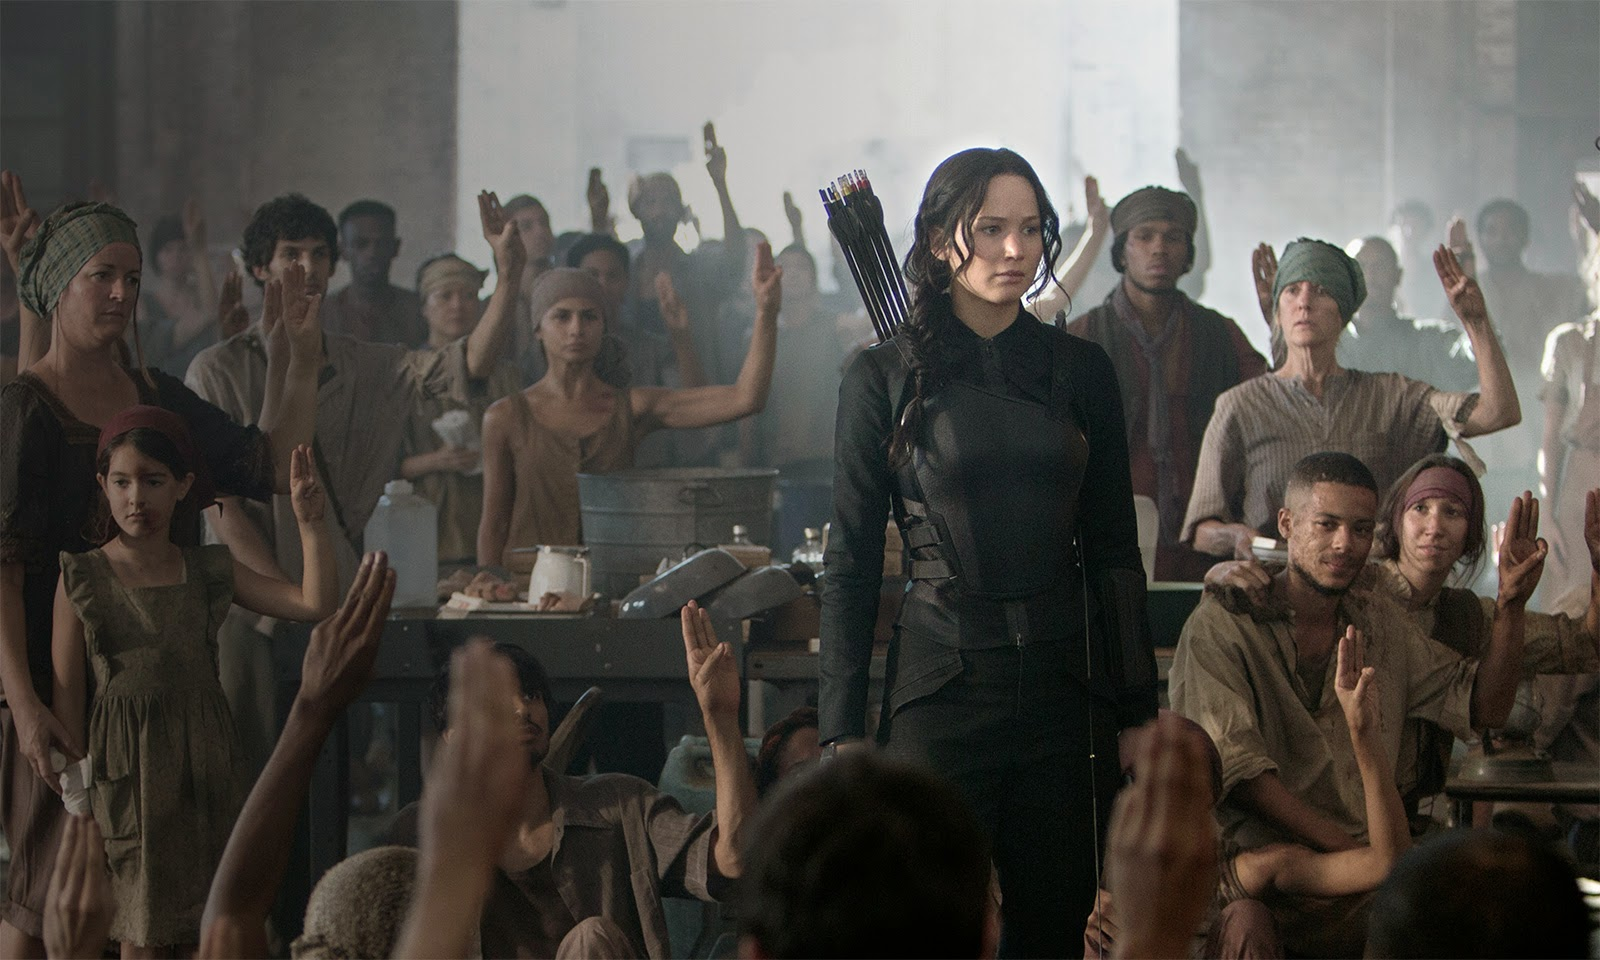 How did Katniss feel about the country of Panem in The Hunger Games?